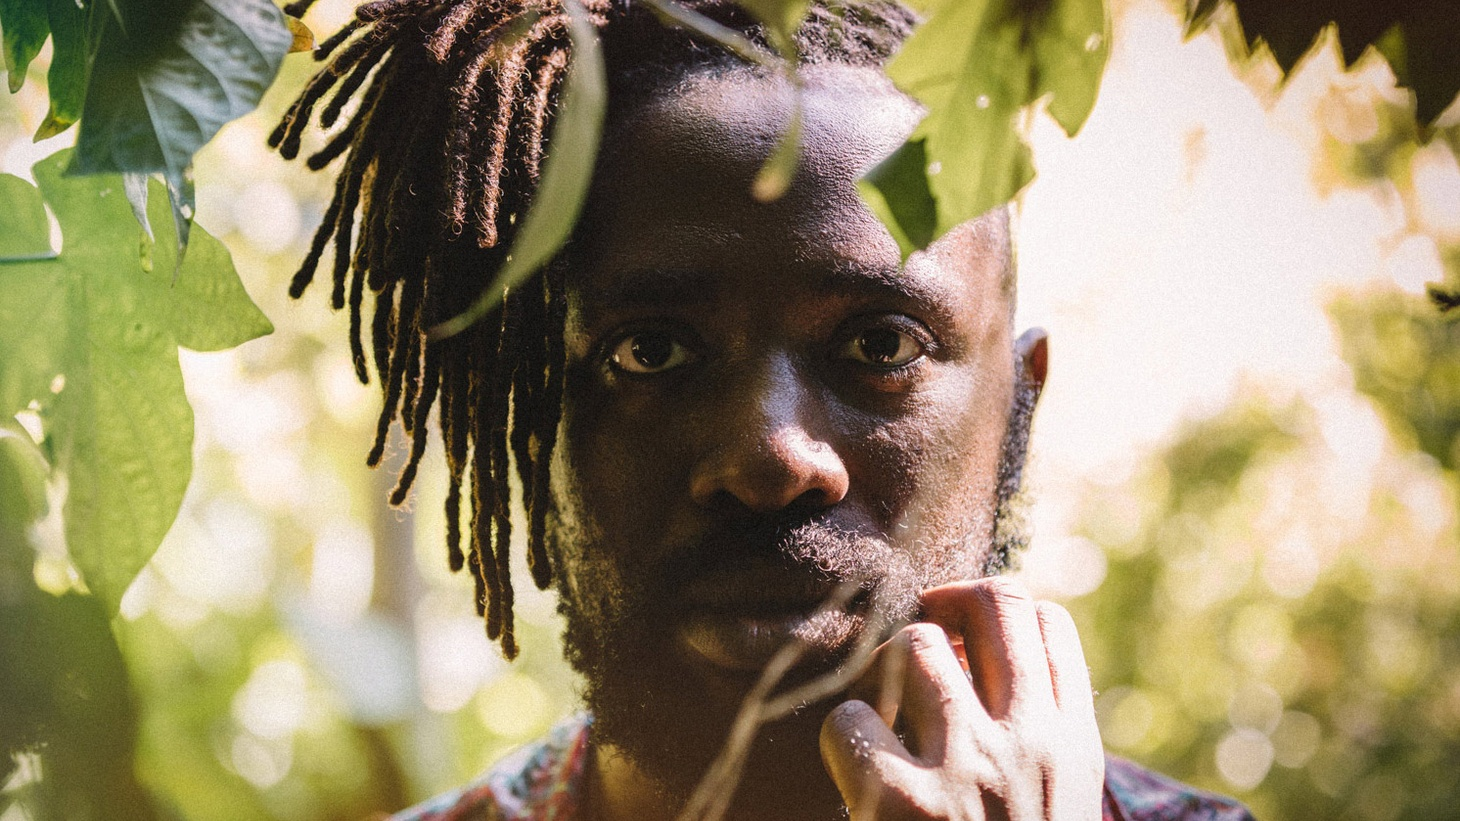 Kele Okereke of Bloc Party launches his third solo album, one that aims his sonic palette in a new, more organic direction.